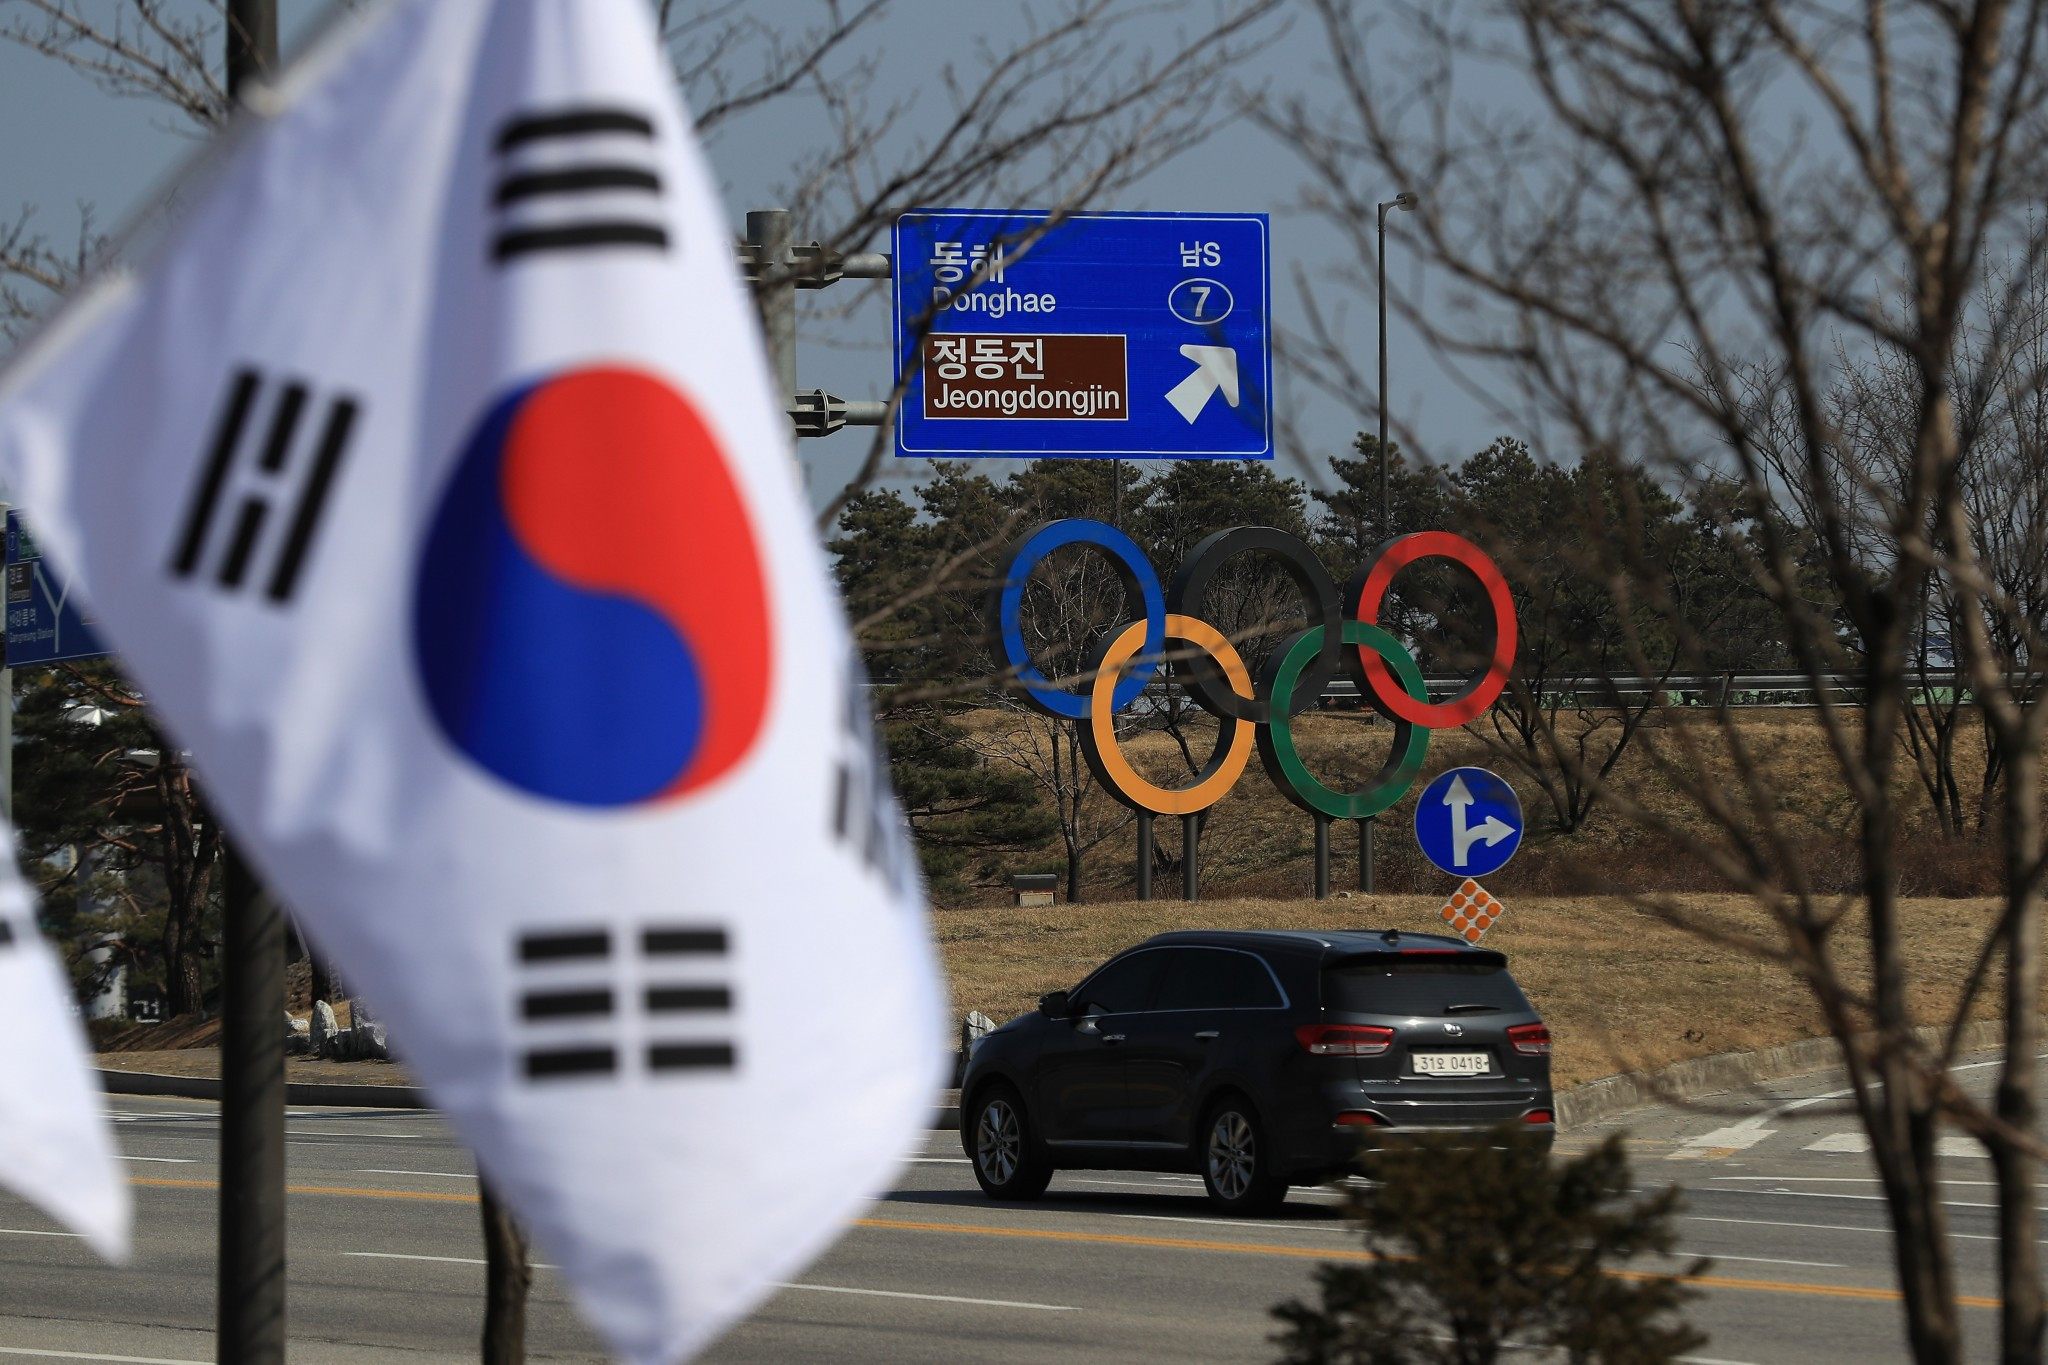 Russia still faces the prospect of missing the 2018 Winter Olympics and Paralympics in South Korea ©Getty Images